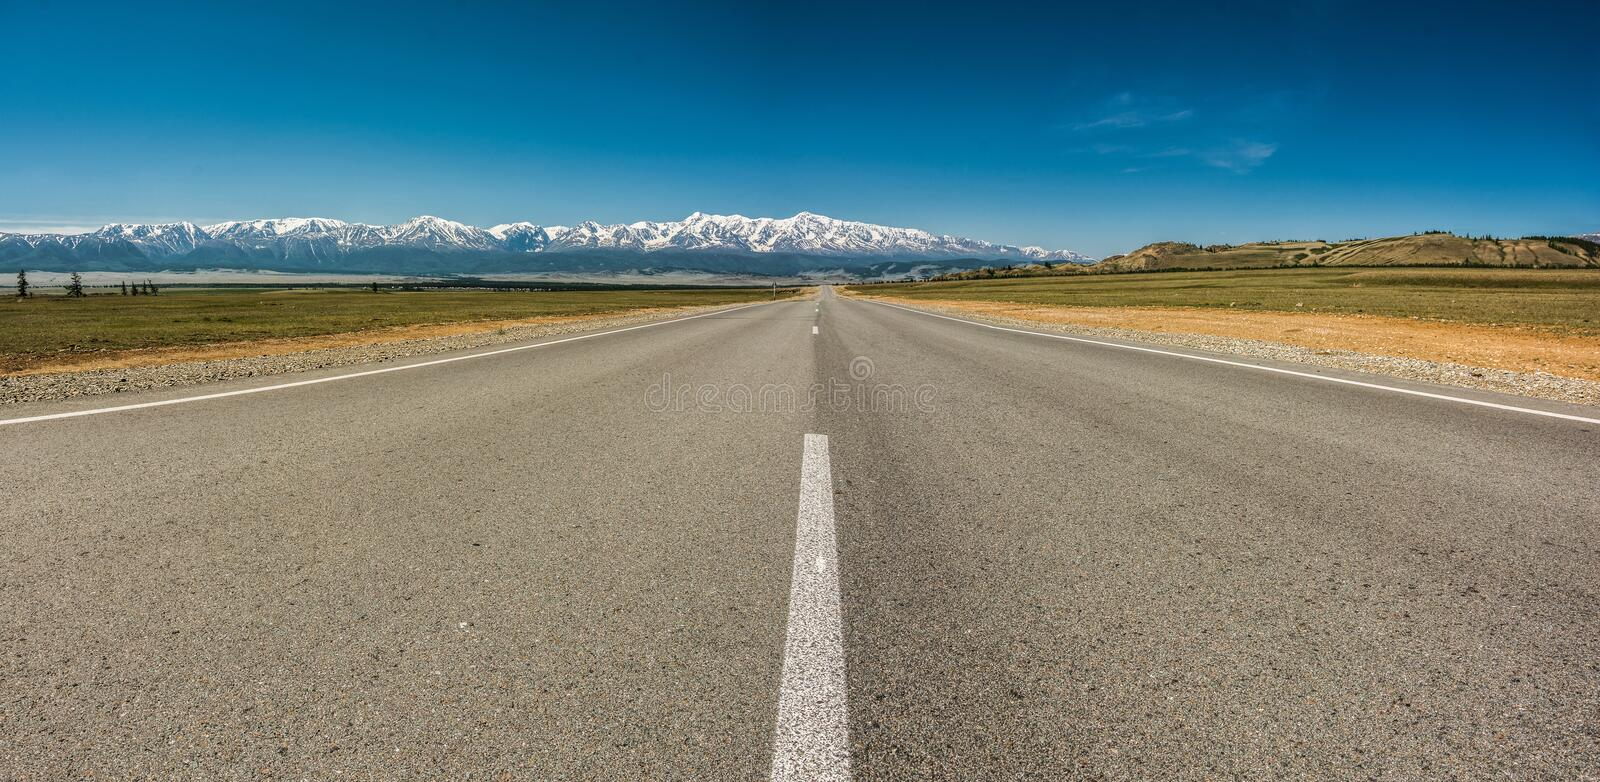 Road M 52 royalty free stock photo